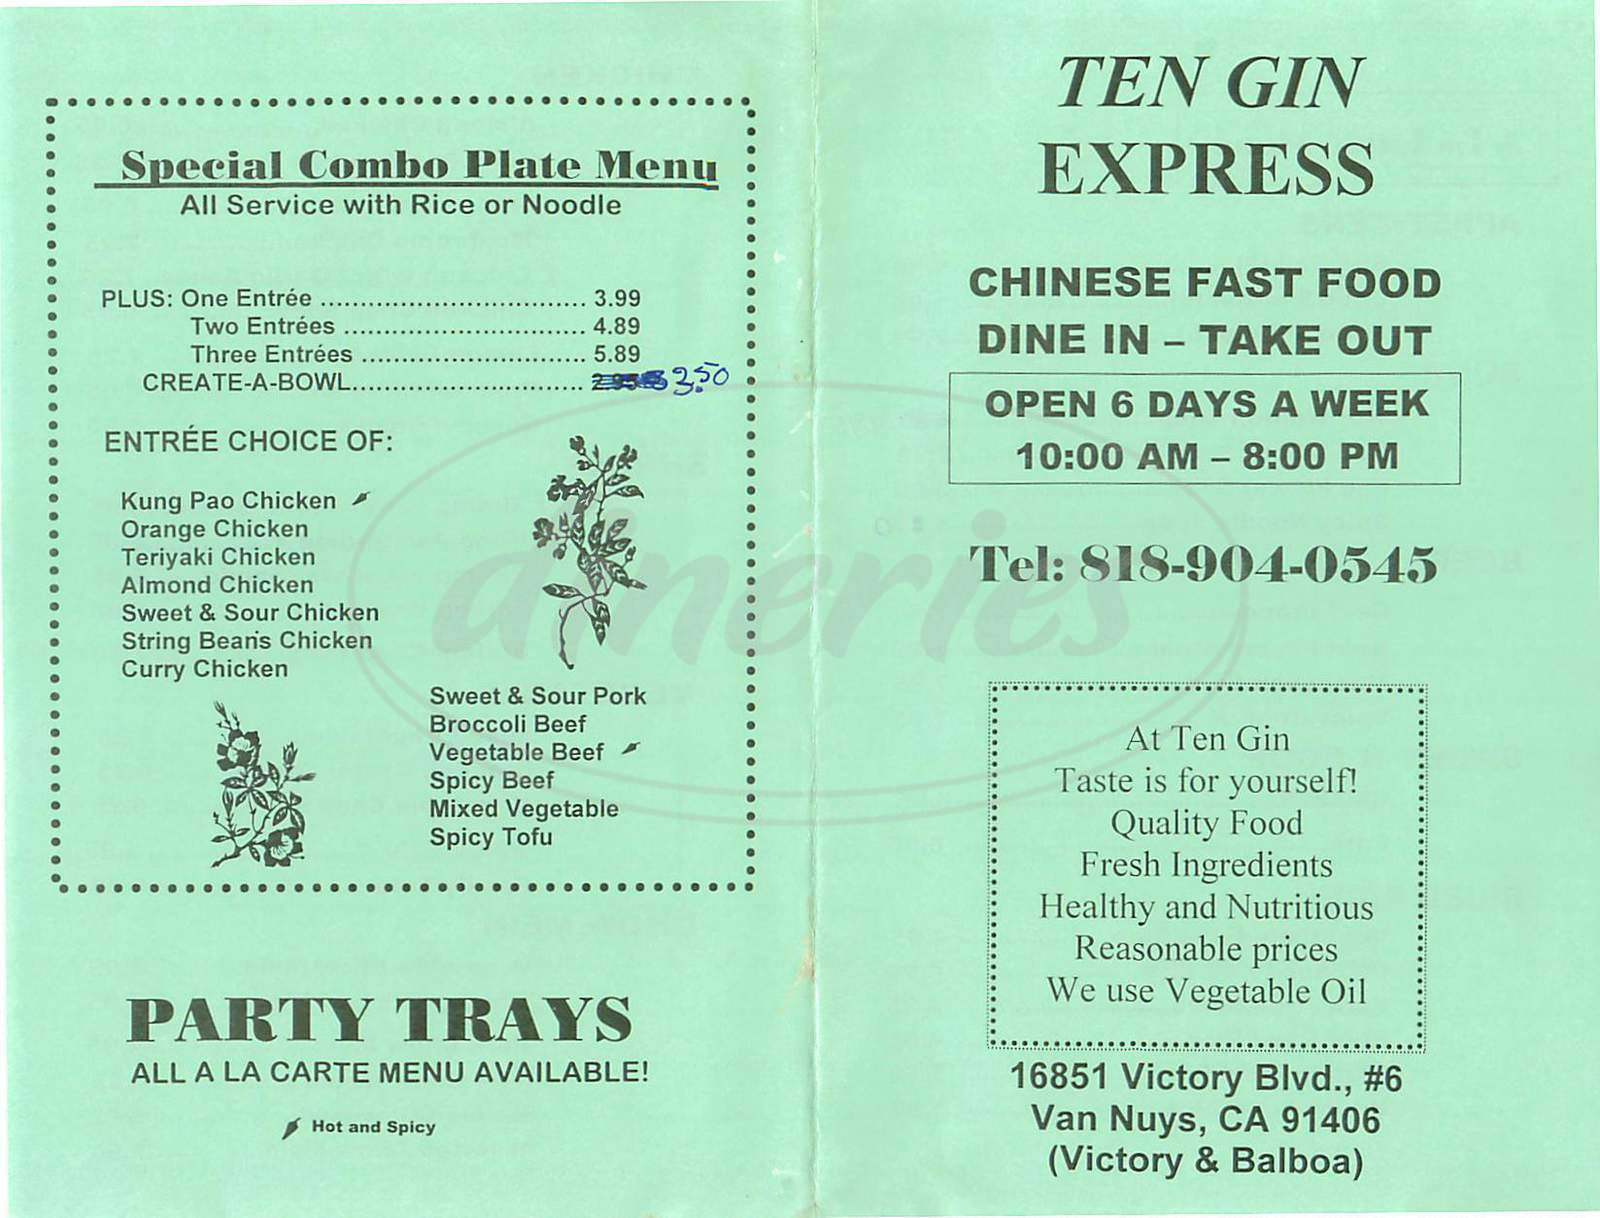 menu for Ten Gin Express